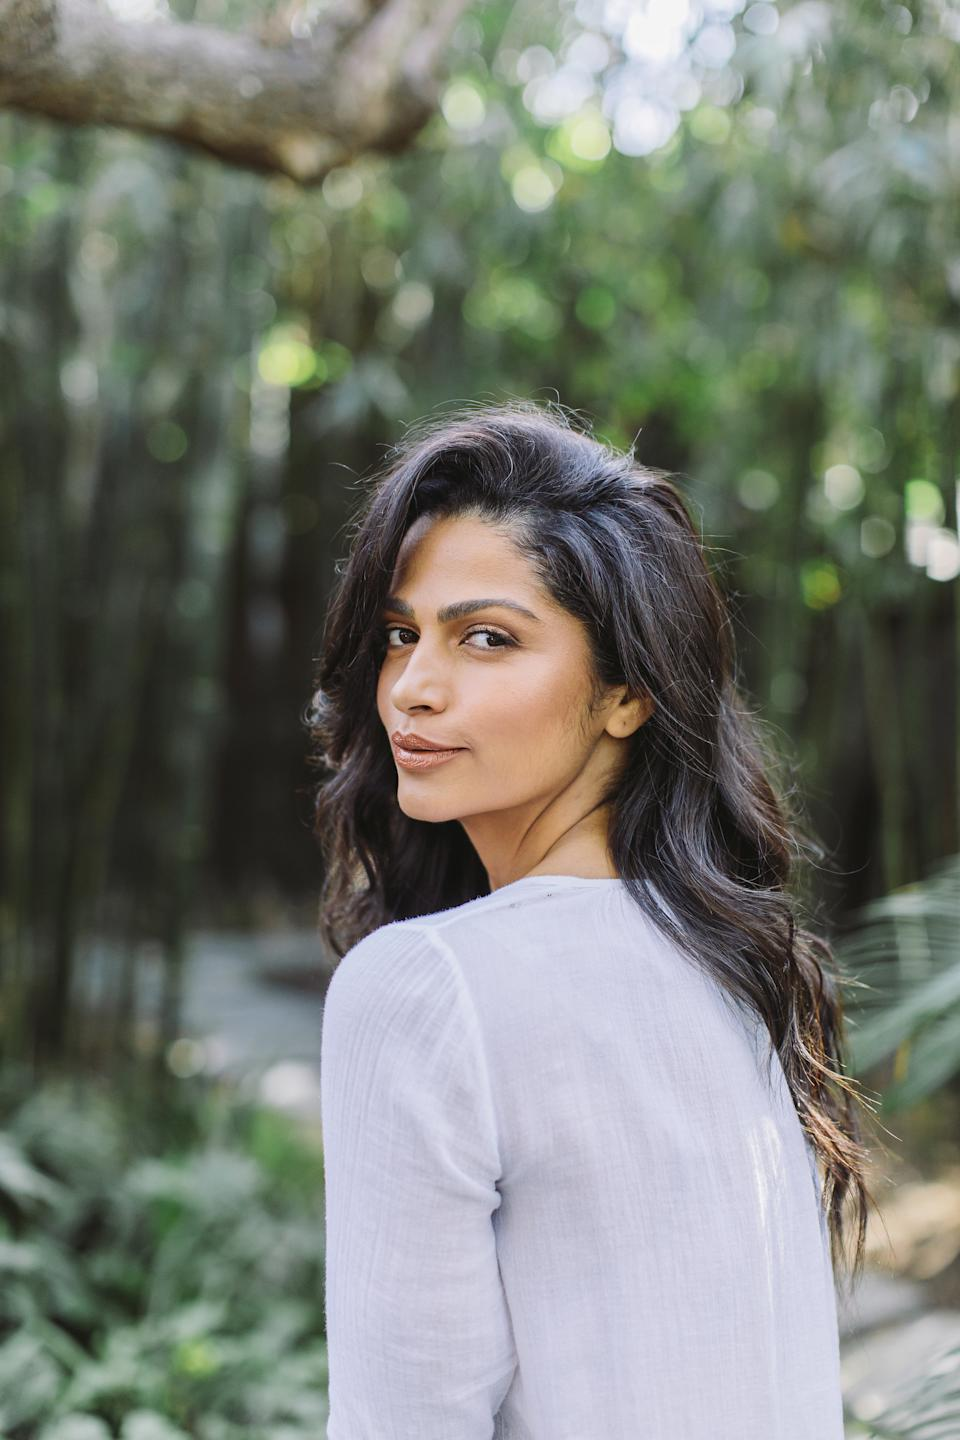 Camila Alves McConaughey has customized a 5-day sugar detox challenge for Yahoo Life readers. (Photo: from Camila Alves McConaughey)